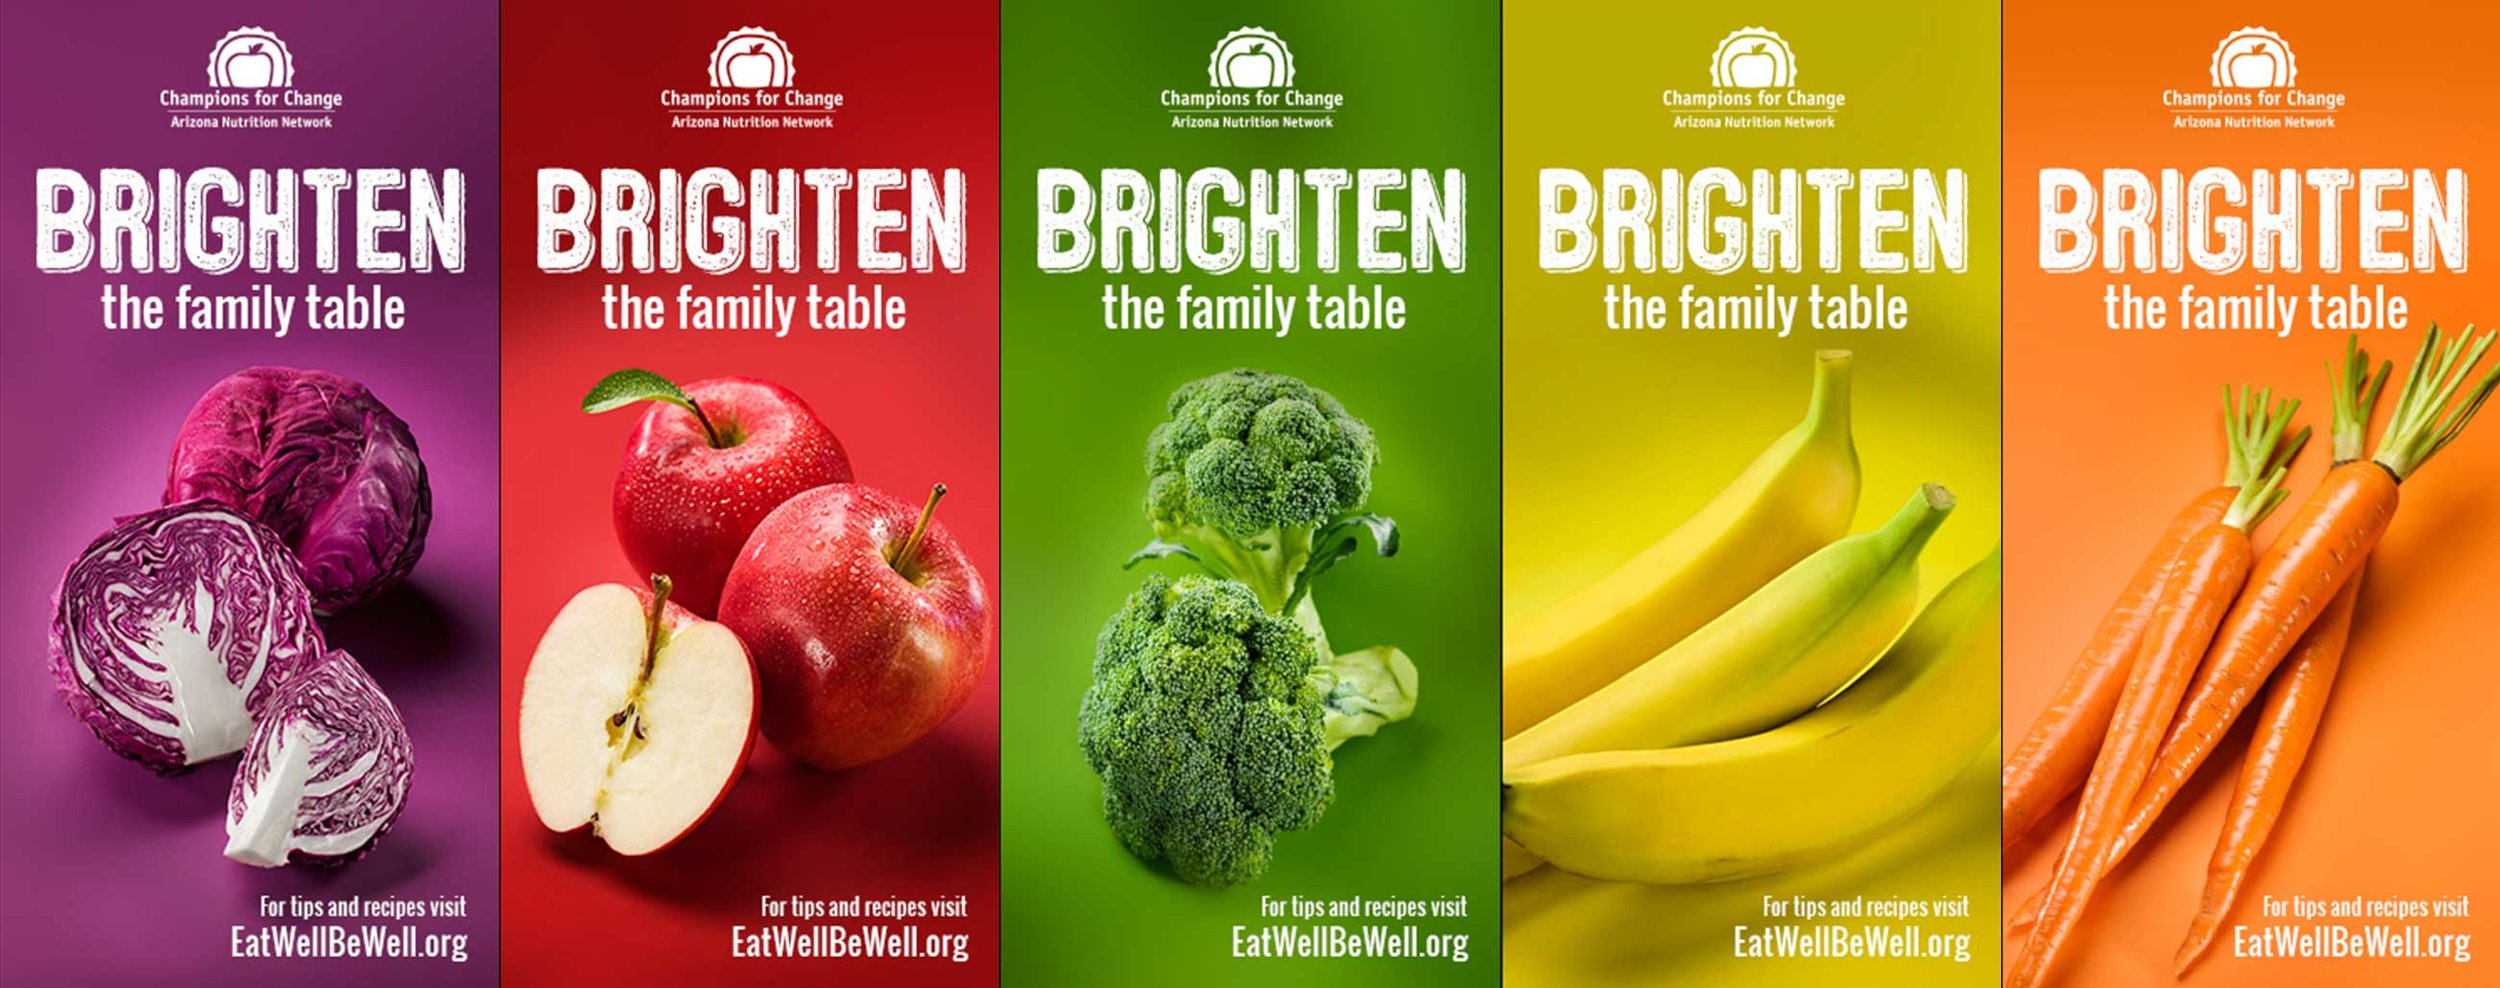 Brighten The Family Table – Strategy, Campaign, Video & Outreach  View Project